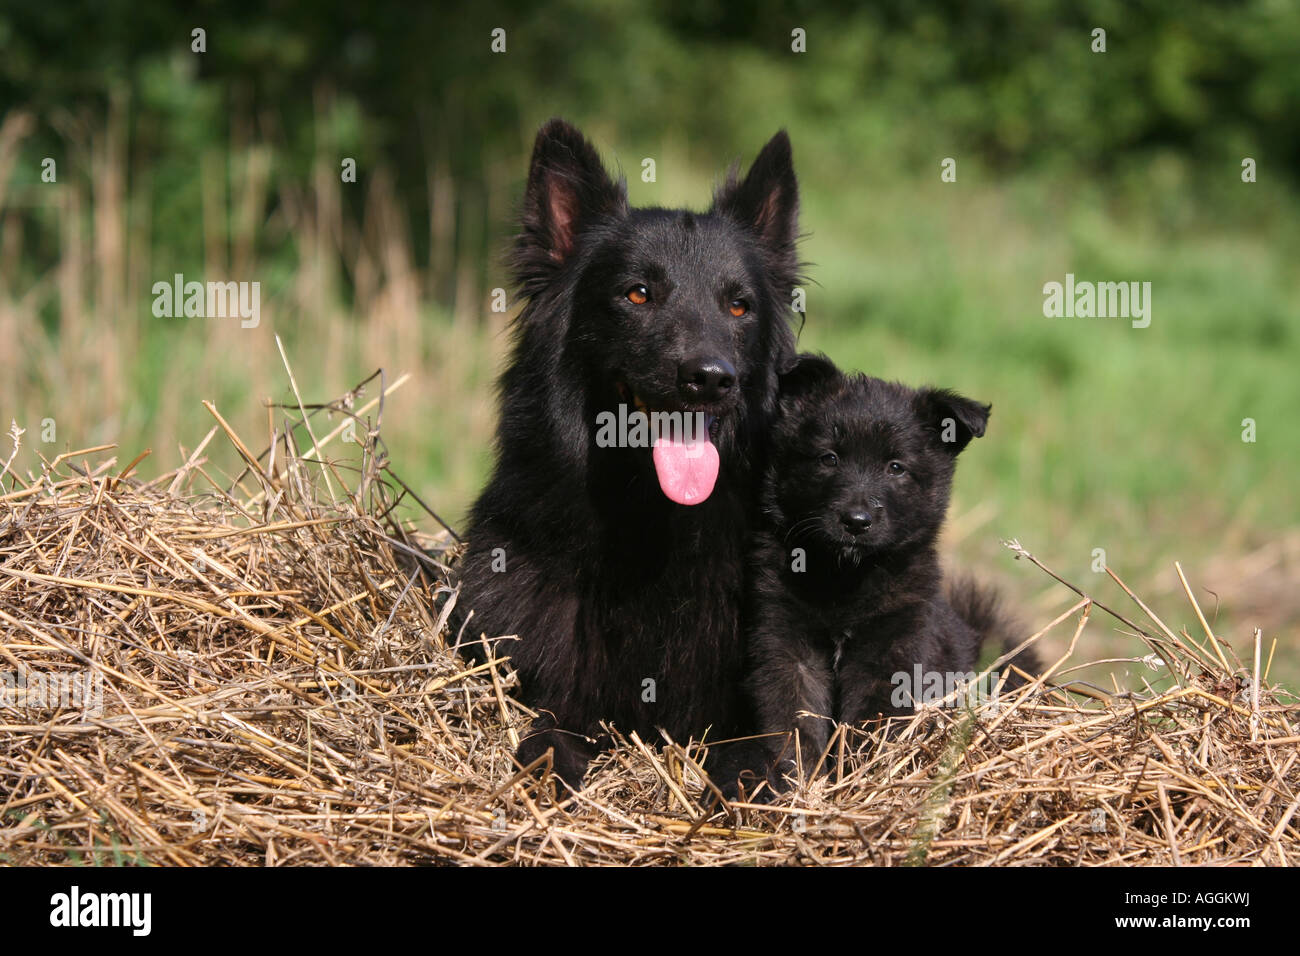 Dutch Shepherd Dog Adult And Puppy Stock Photo 14206493 Alamy